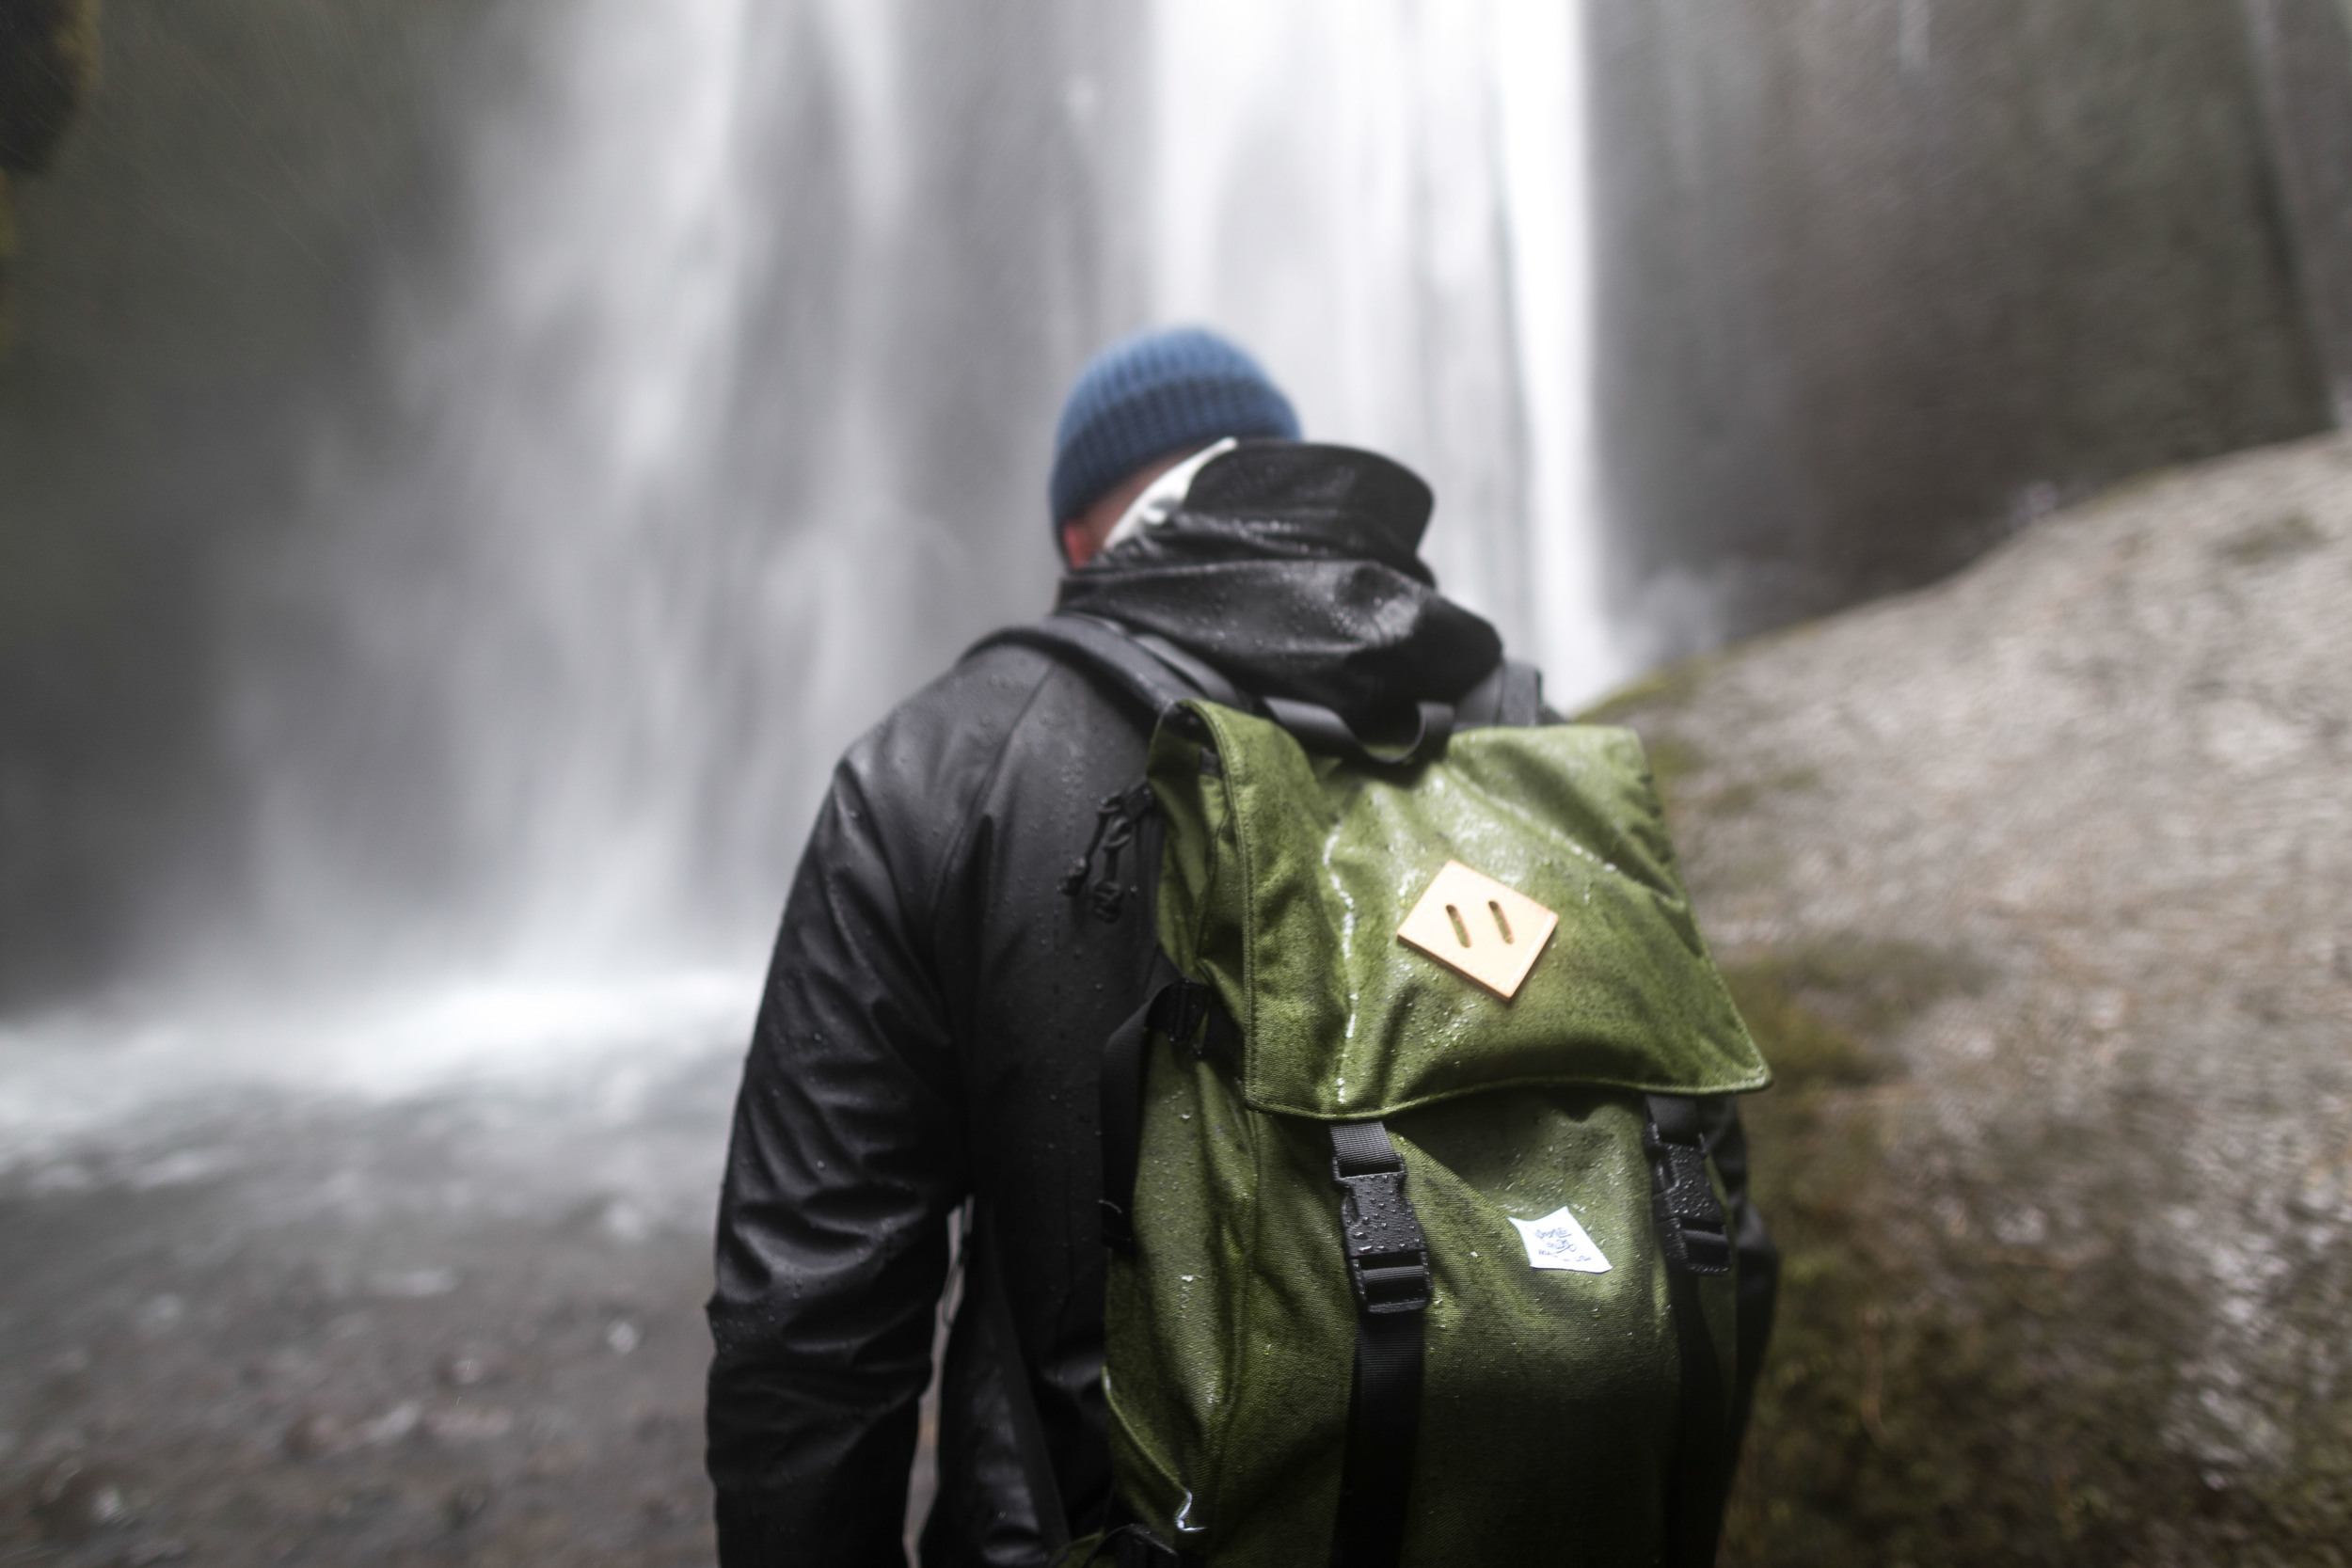 Field tested and photo taken by our friend, Gunnar @icelandic_explorer